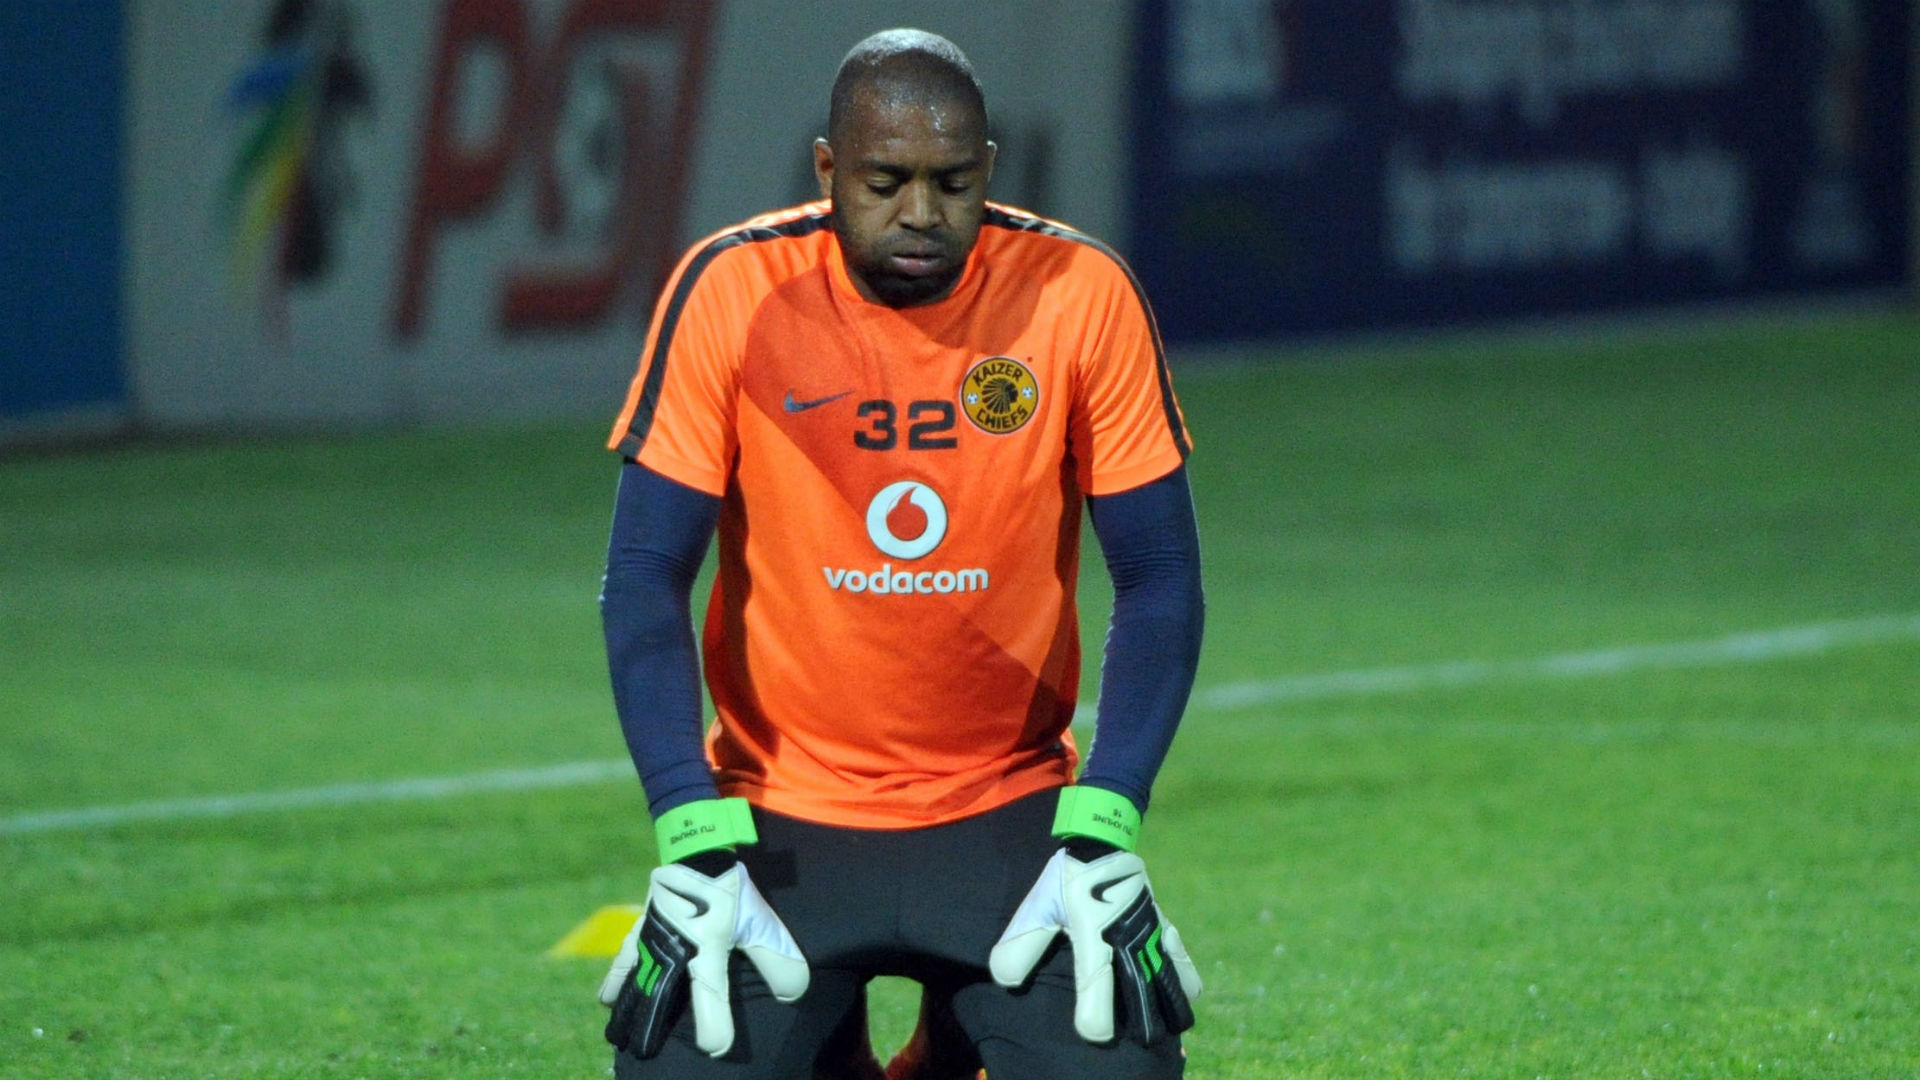 Itumeleng Khune boost for South Africa